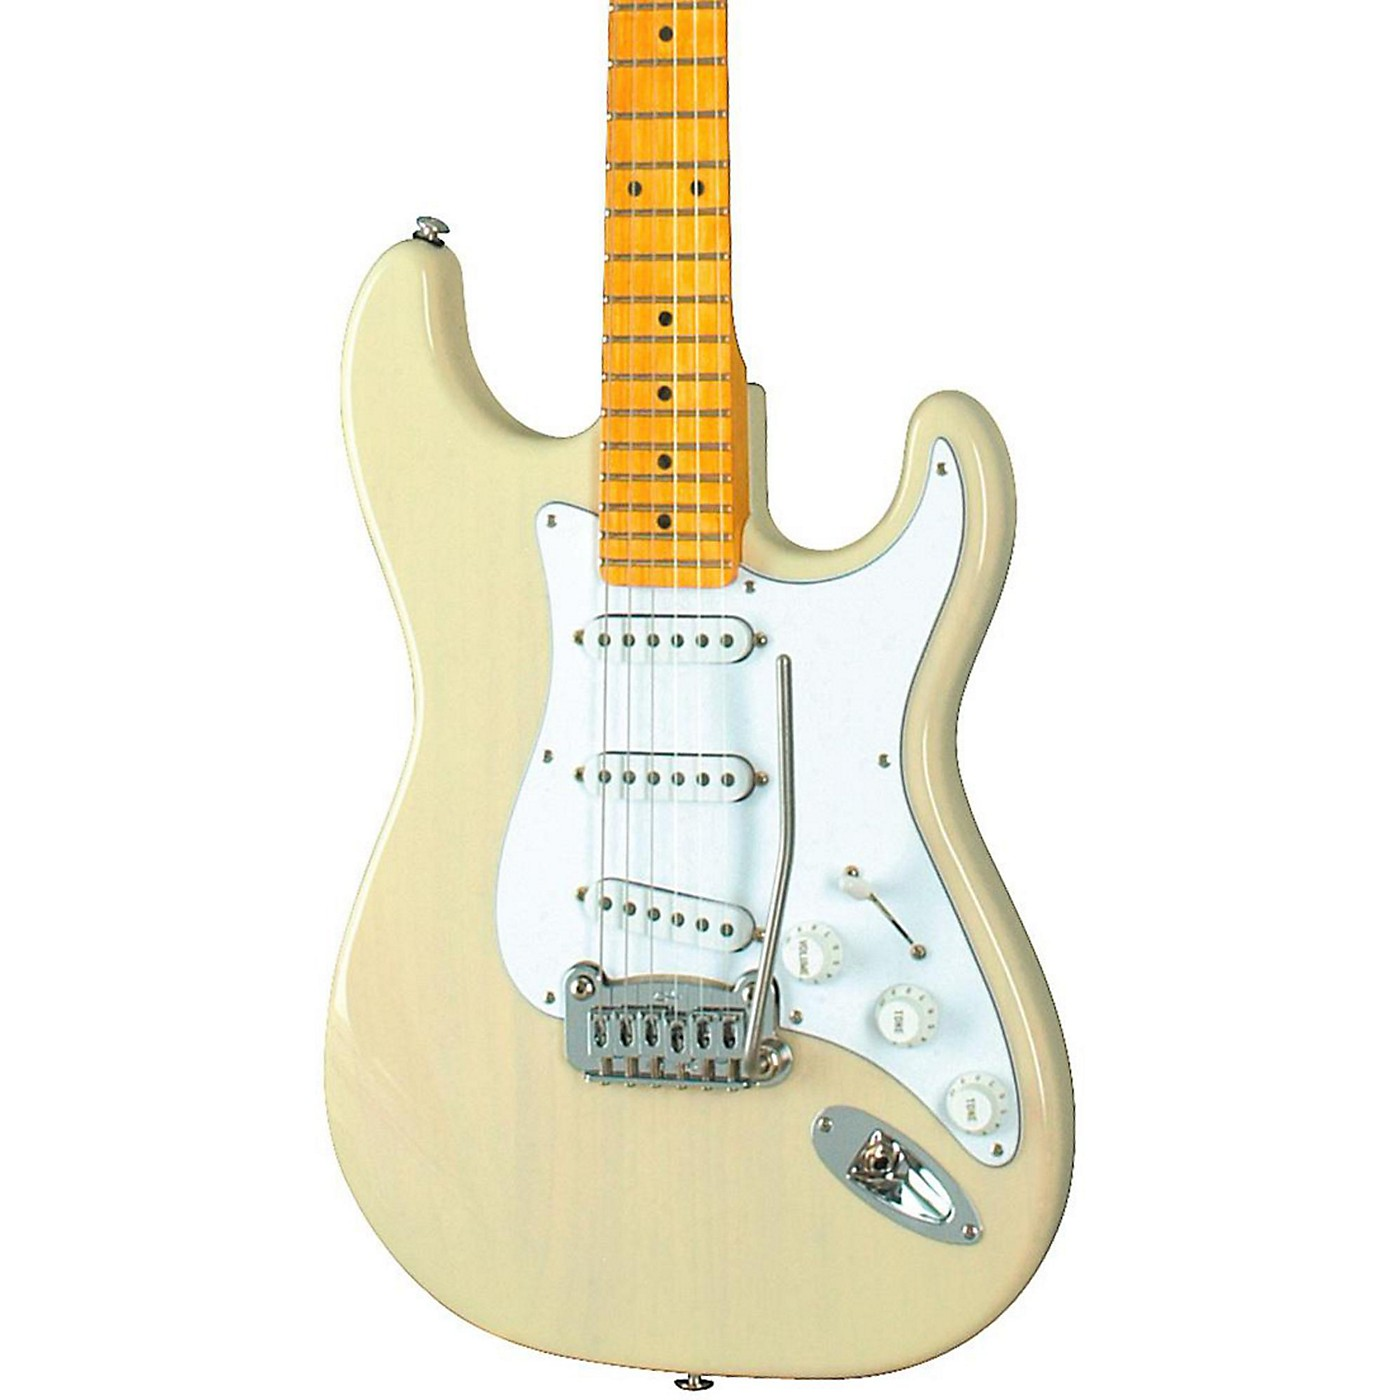 G&L Legacy Electric Guitar with Tinted Maple Neck thumbnail